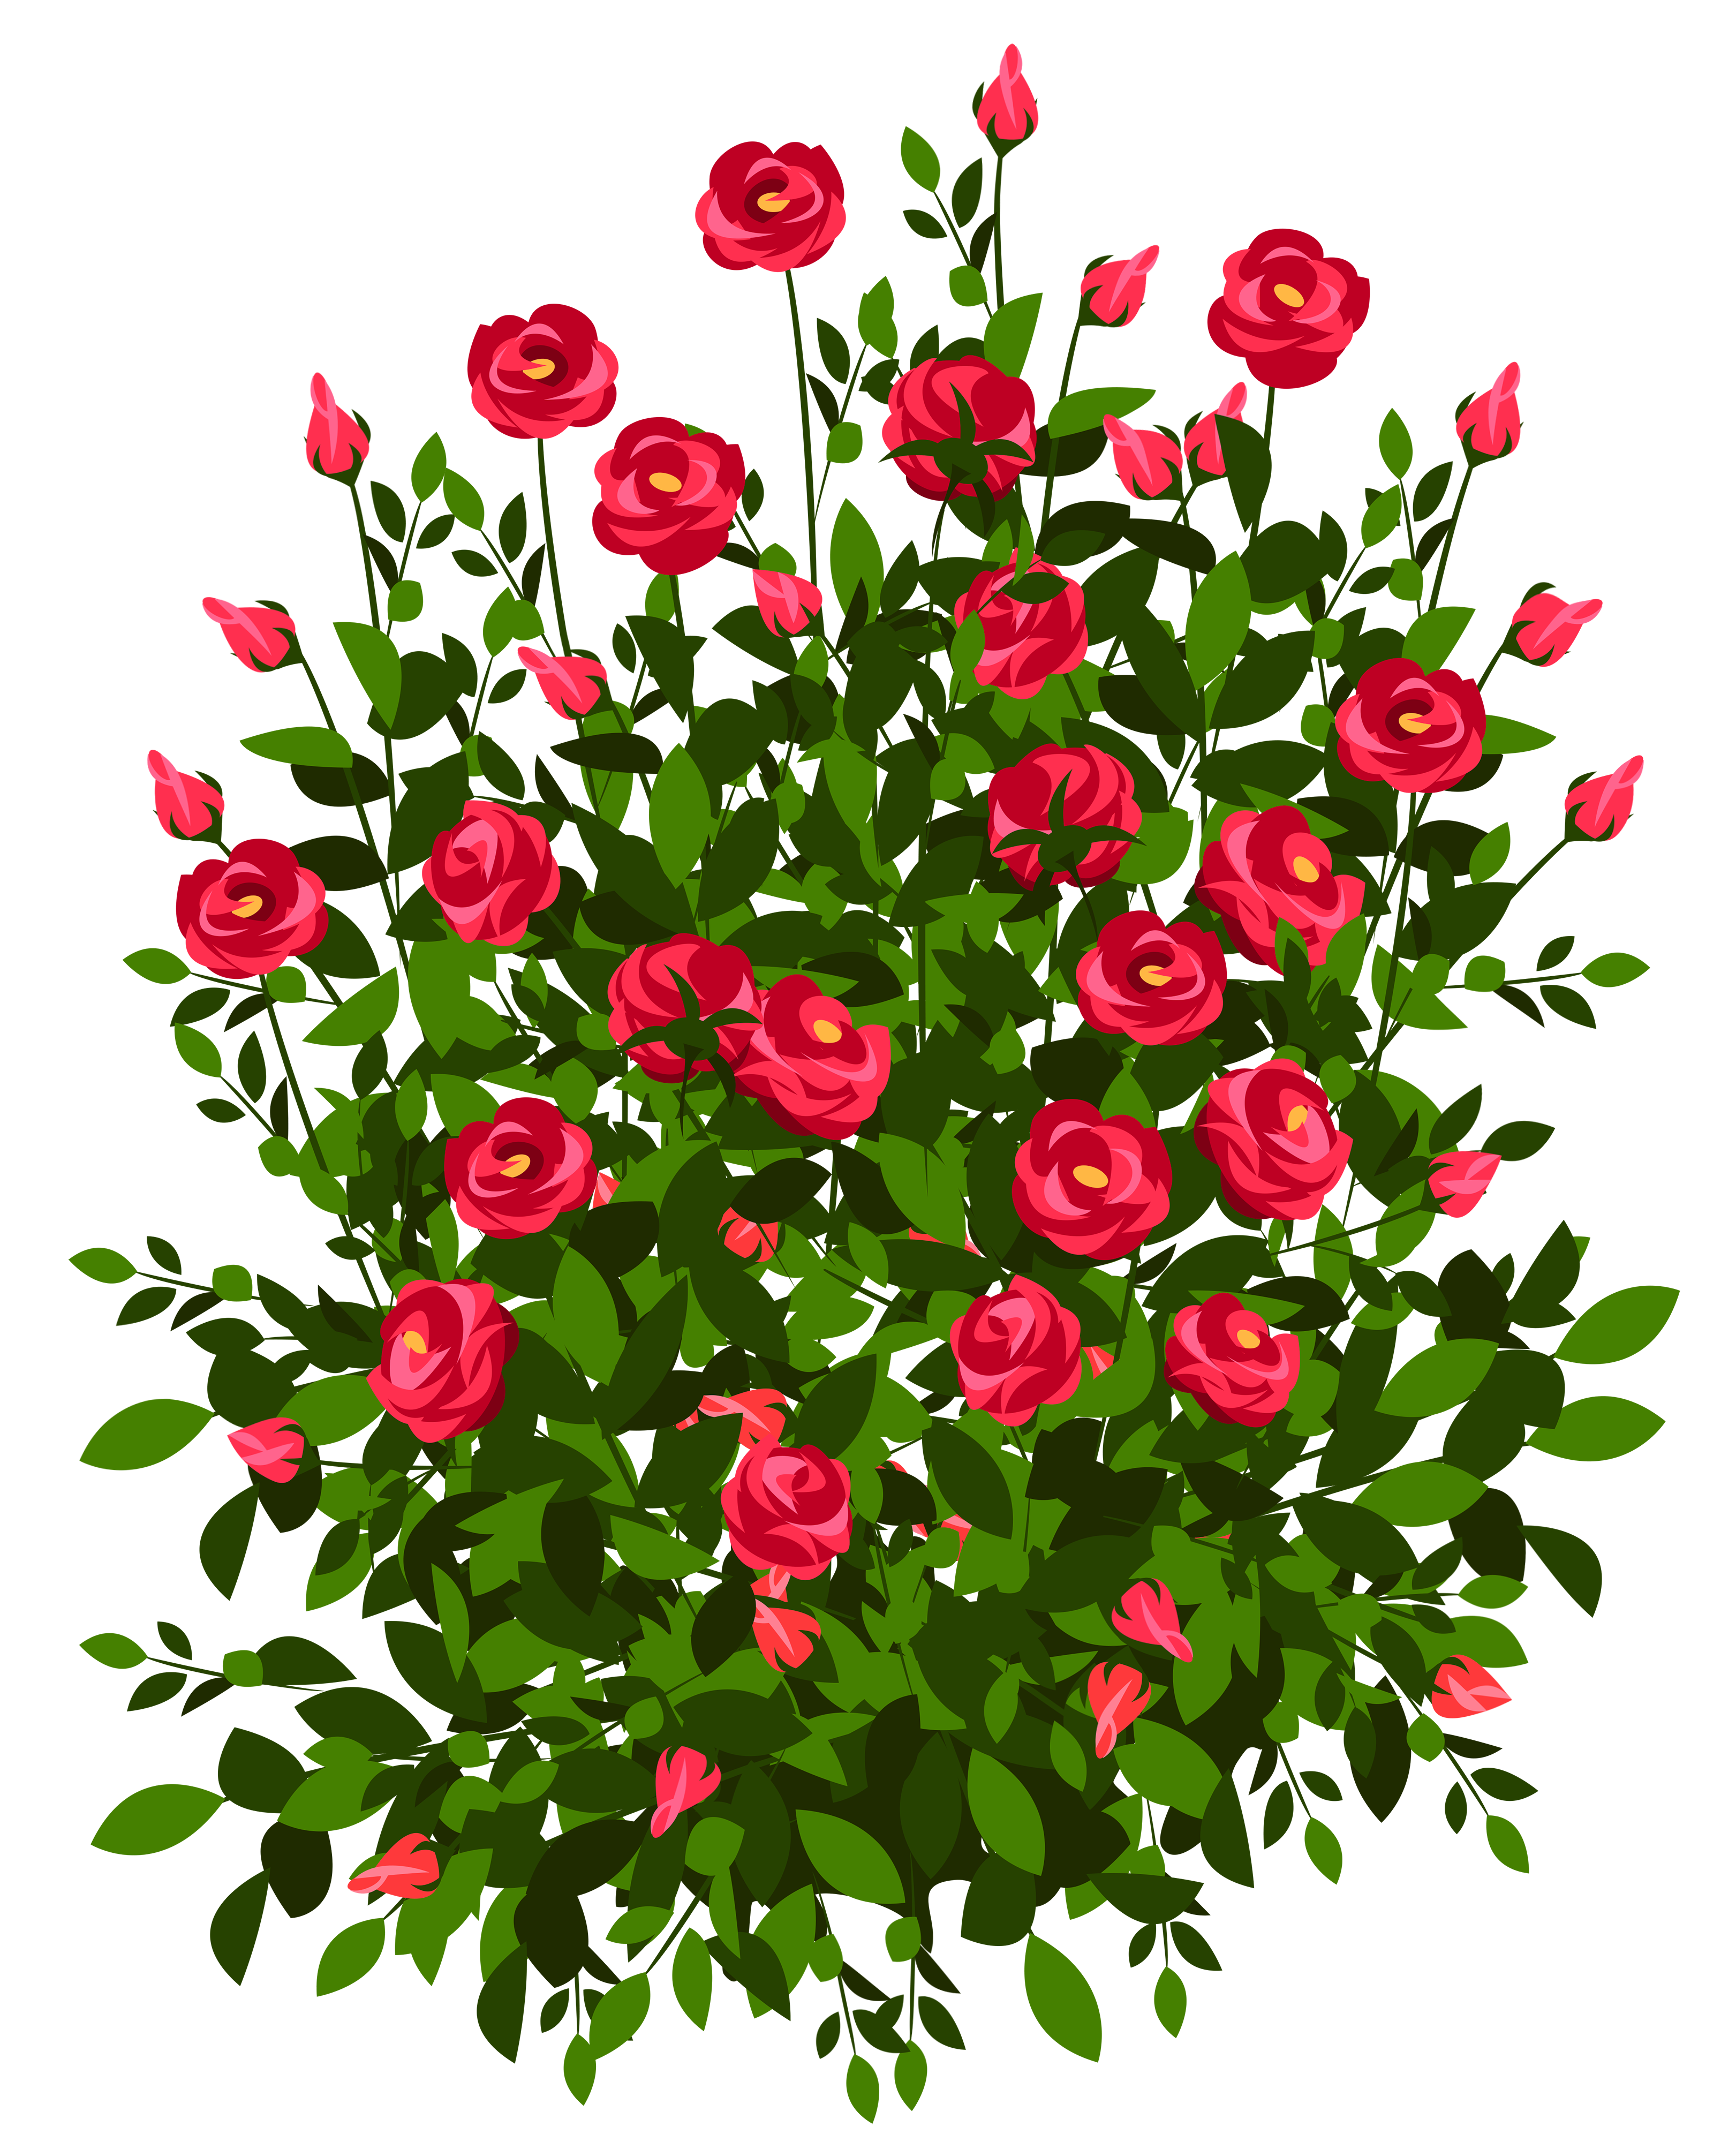 Drawn rose bush flower clipart #19 Rose Rose drawings clipart